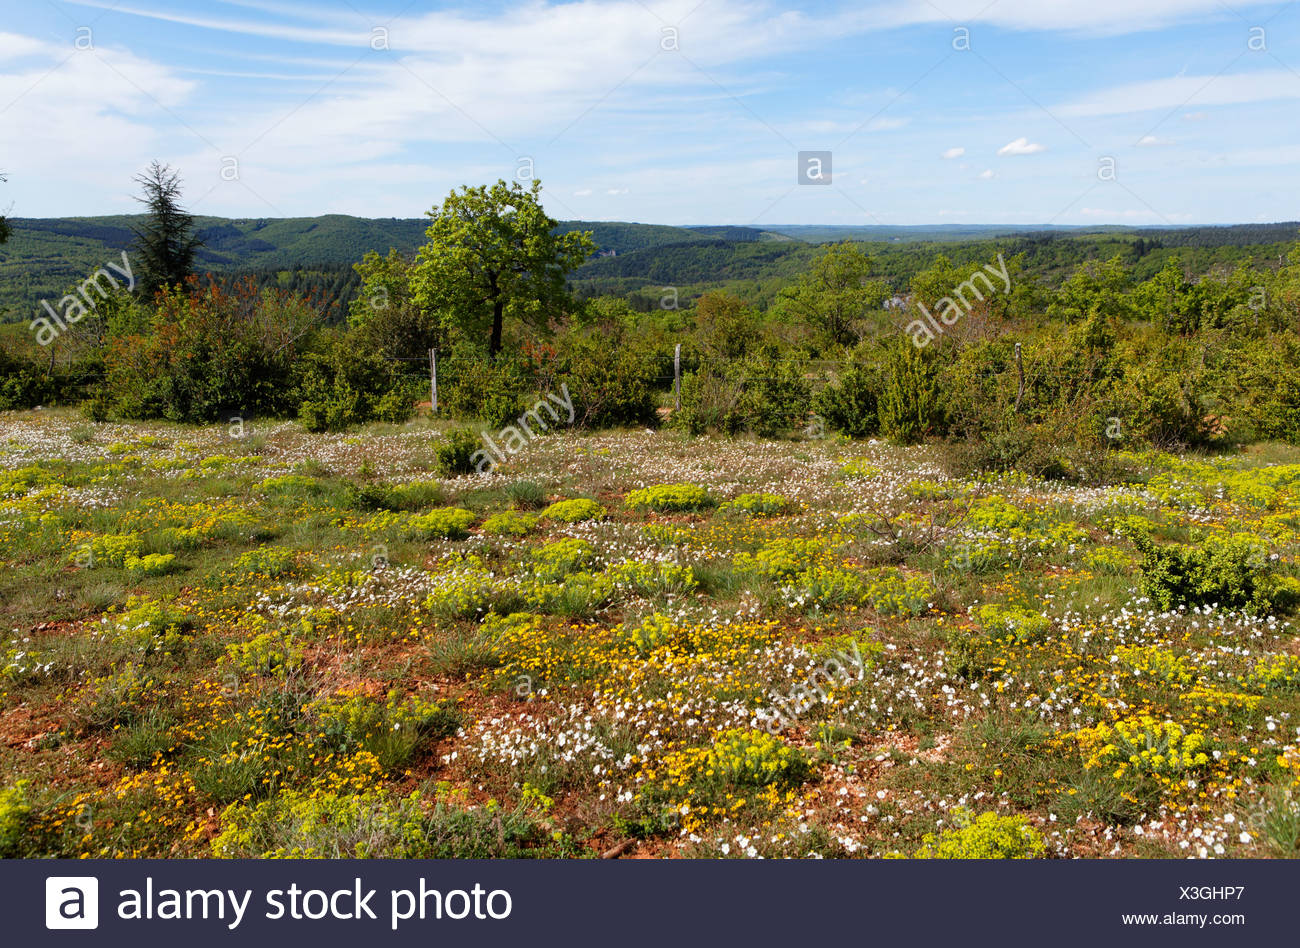 Spring landscape, Causse near Cabrerets, Quercy, Lot, France, Europe - Stock Image